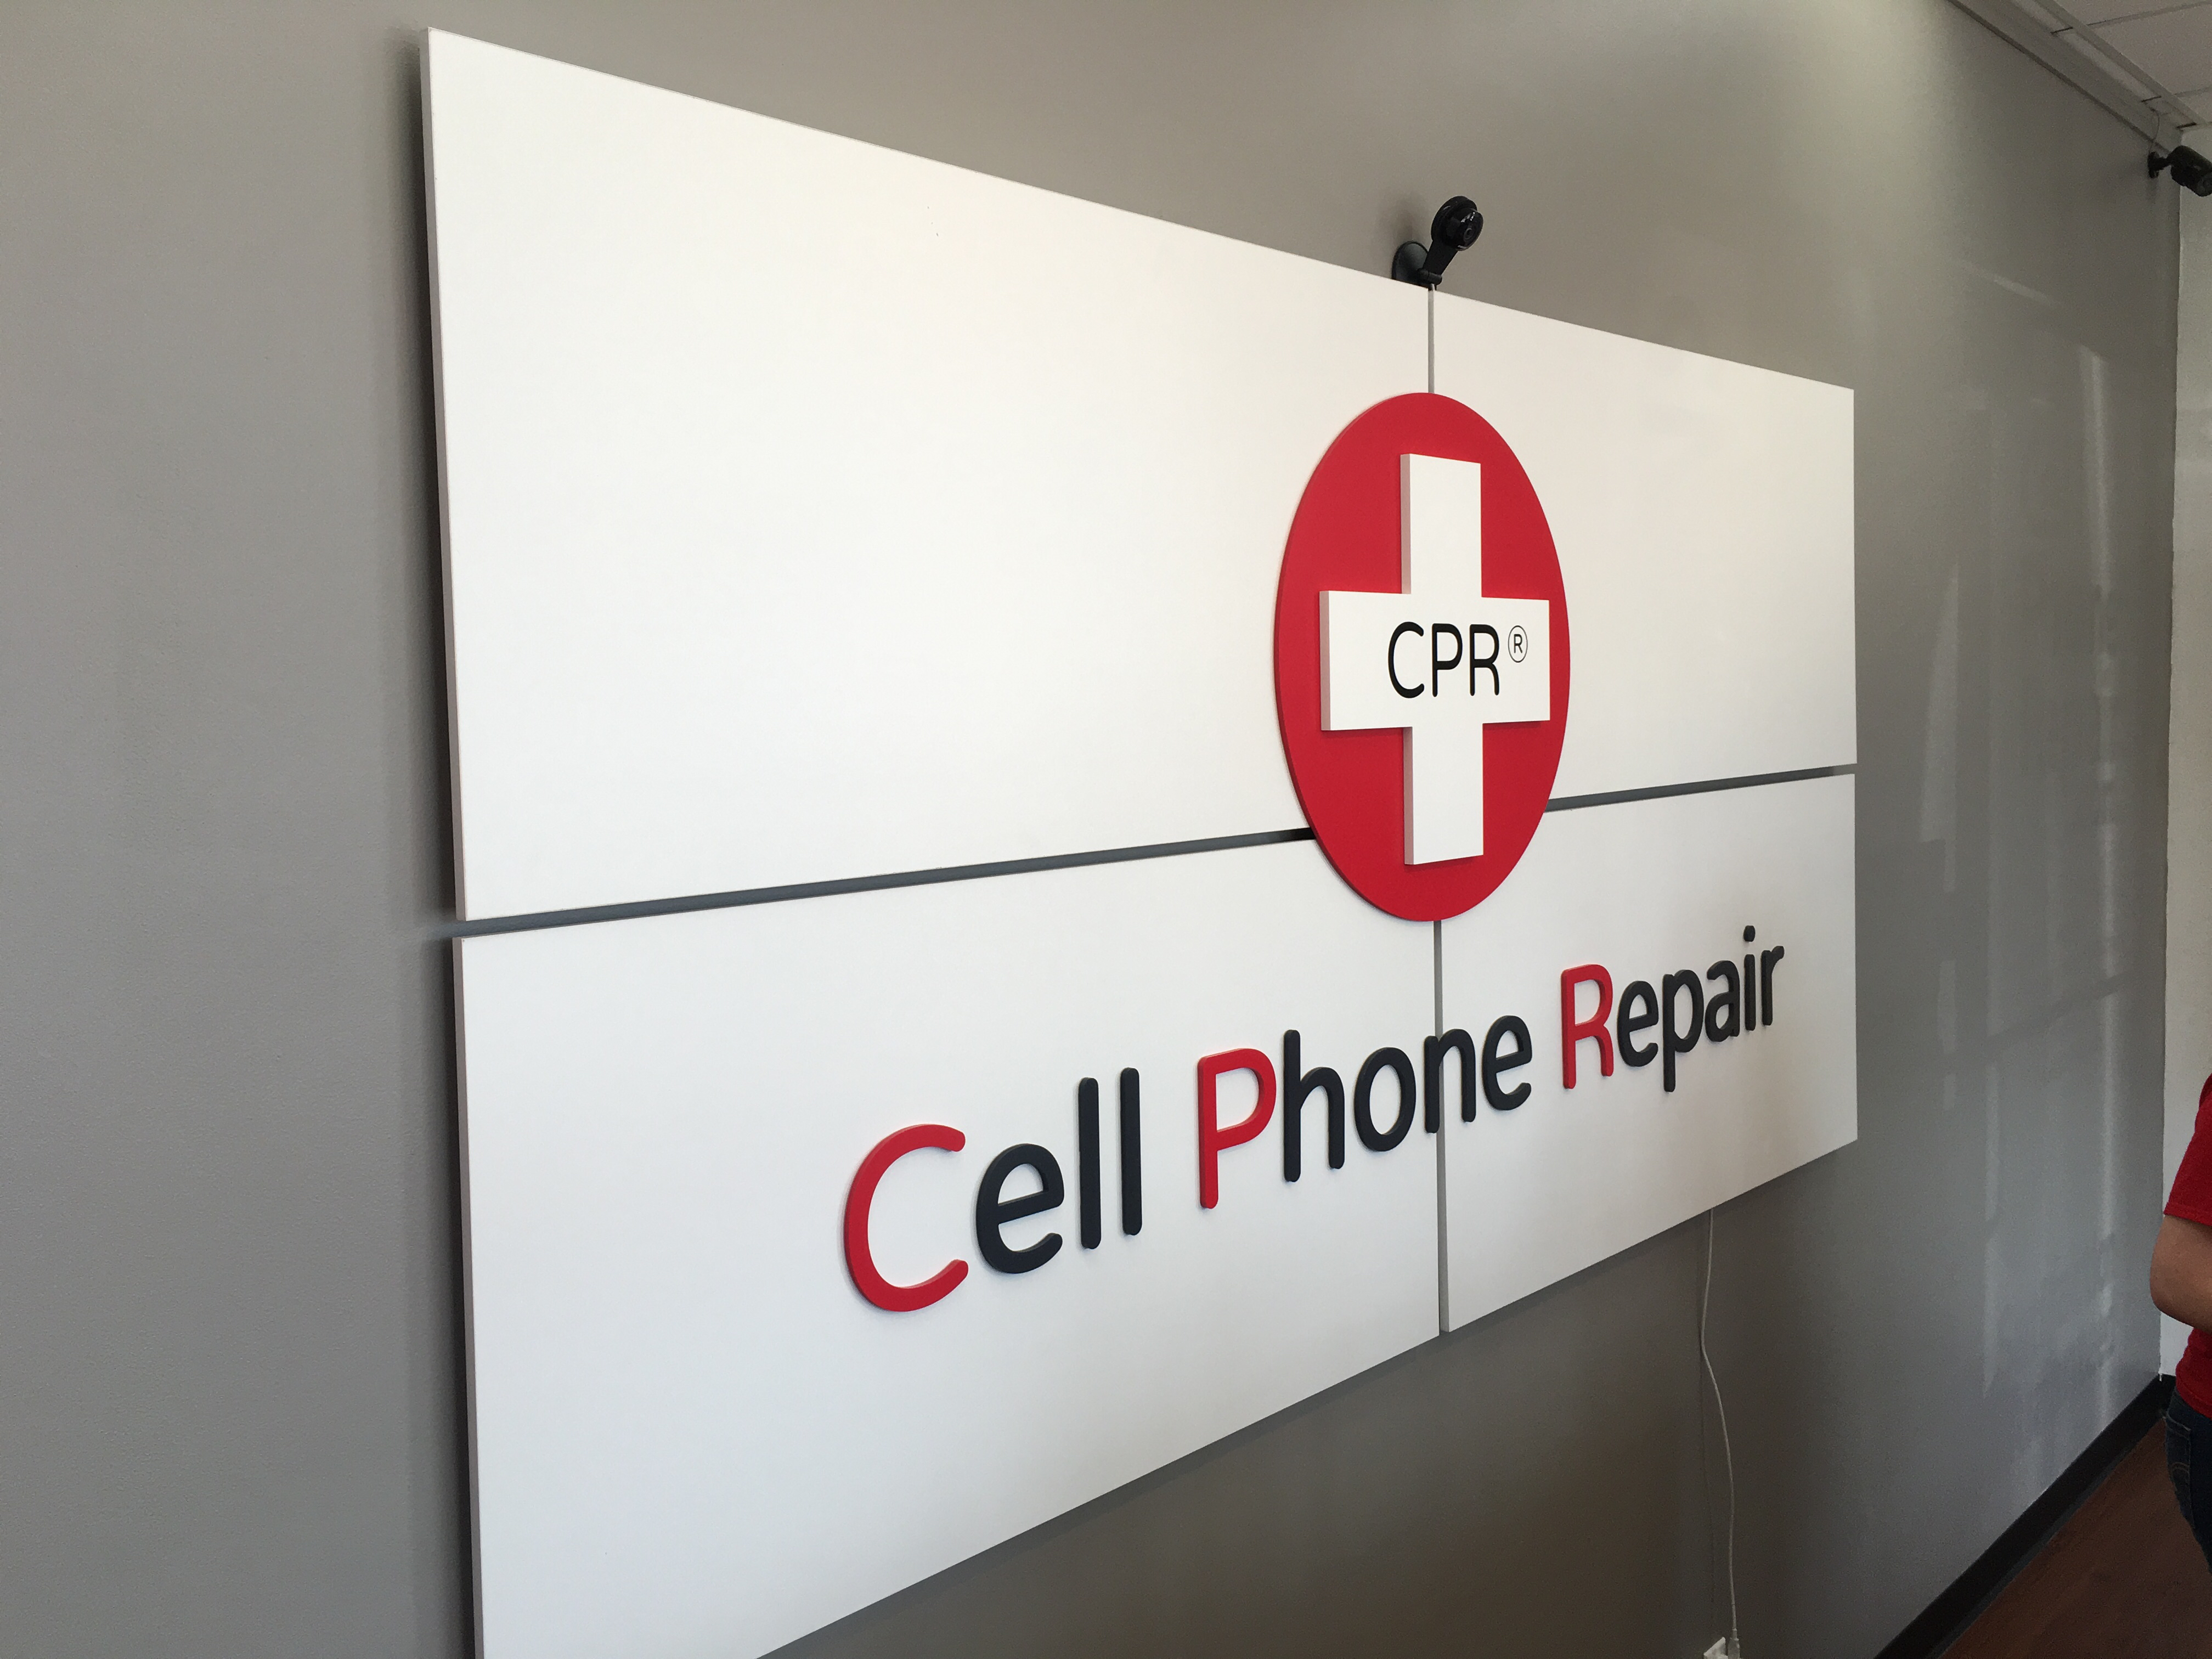 CPR Cell Phone Repair Anderson image 3